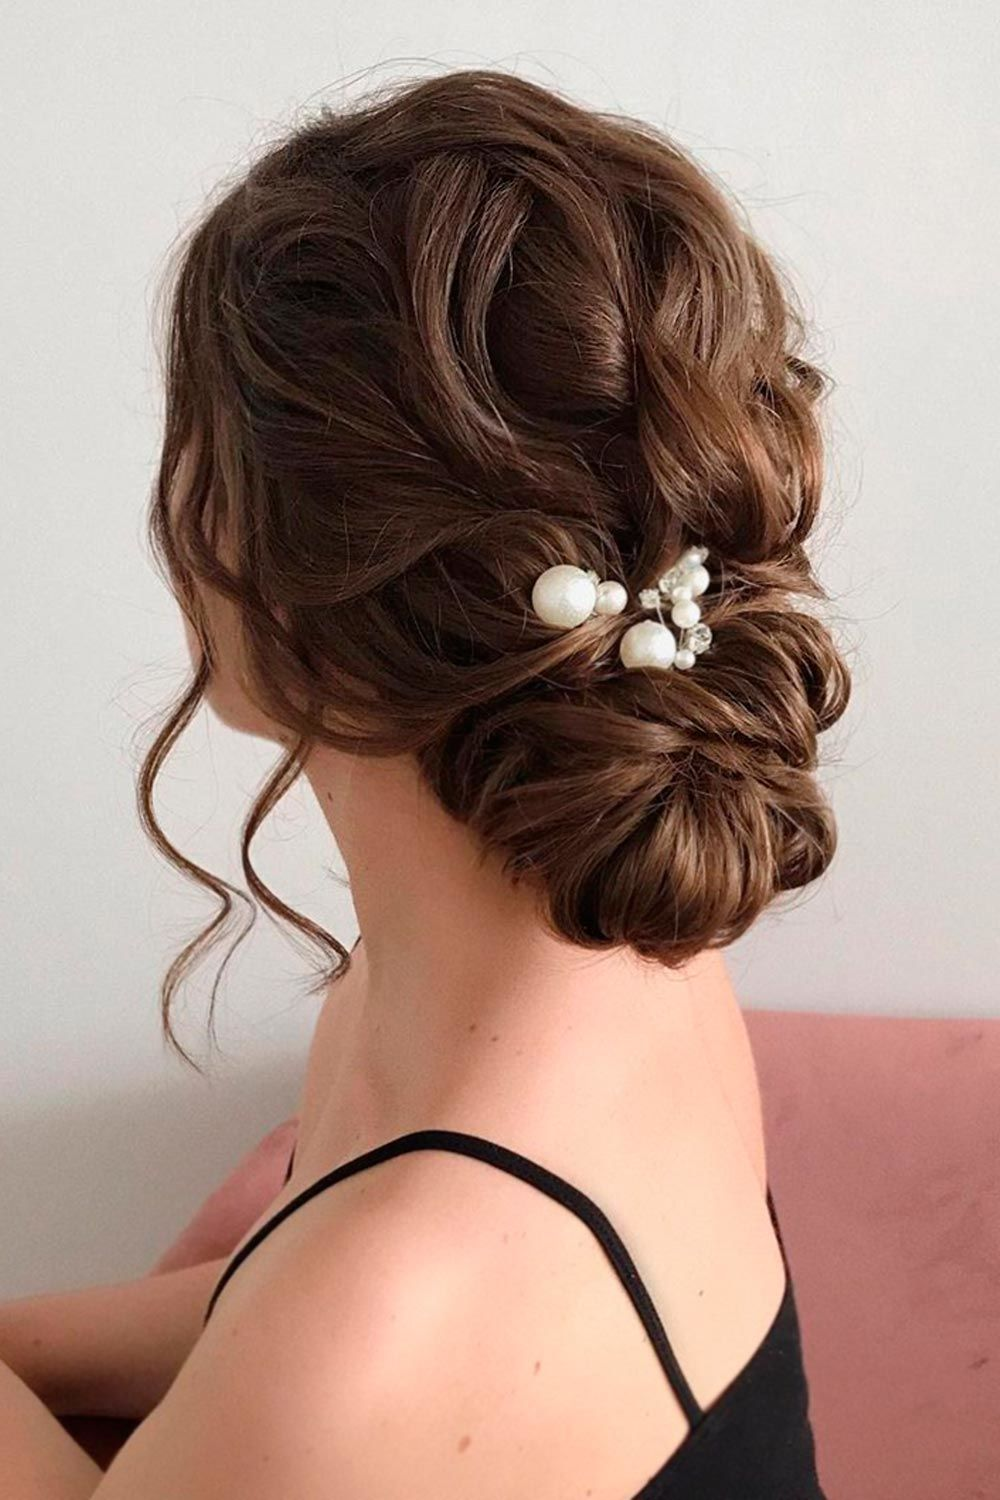 Wavy Updo Hairstyle